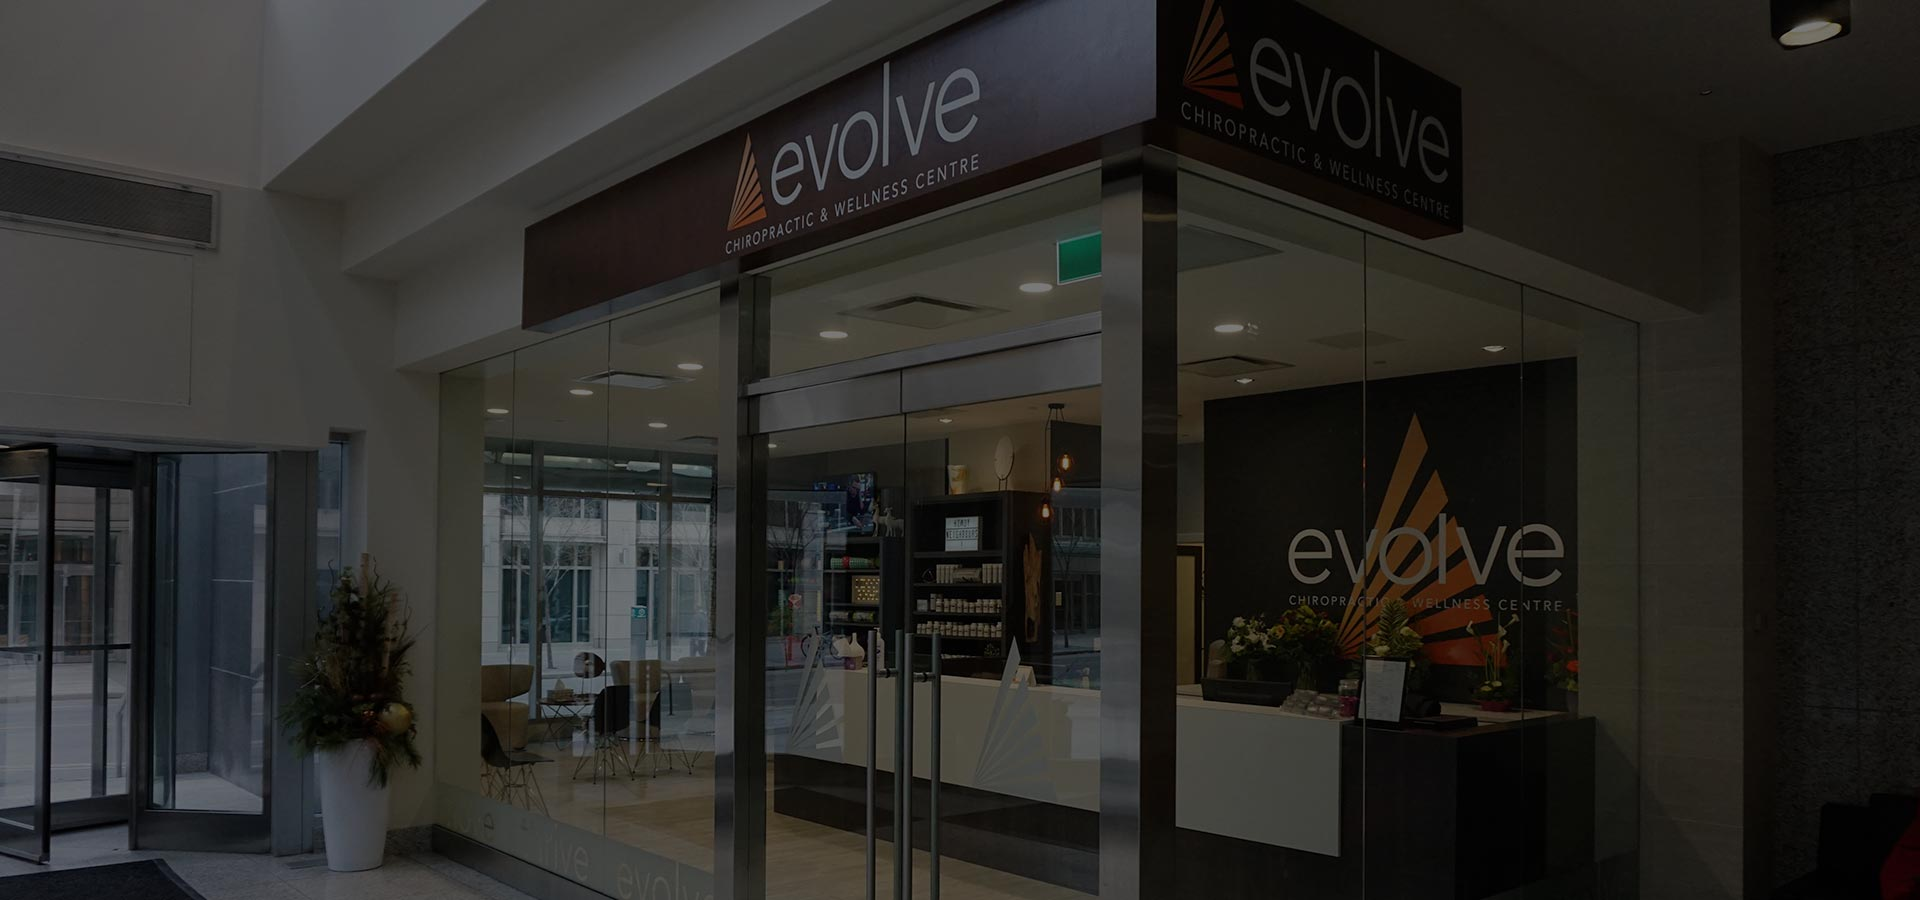 evolve 8th Avenue Location | Evolve Chiropractic and Wellness | Downtown Calgary